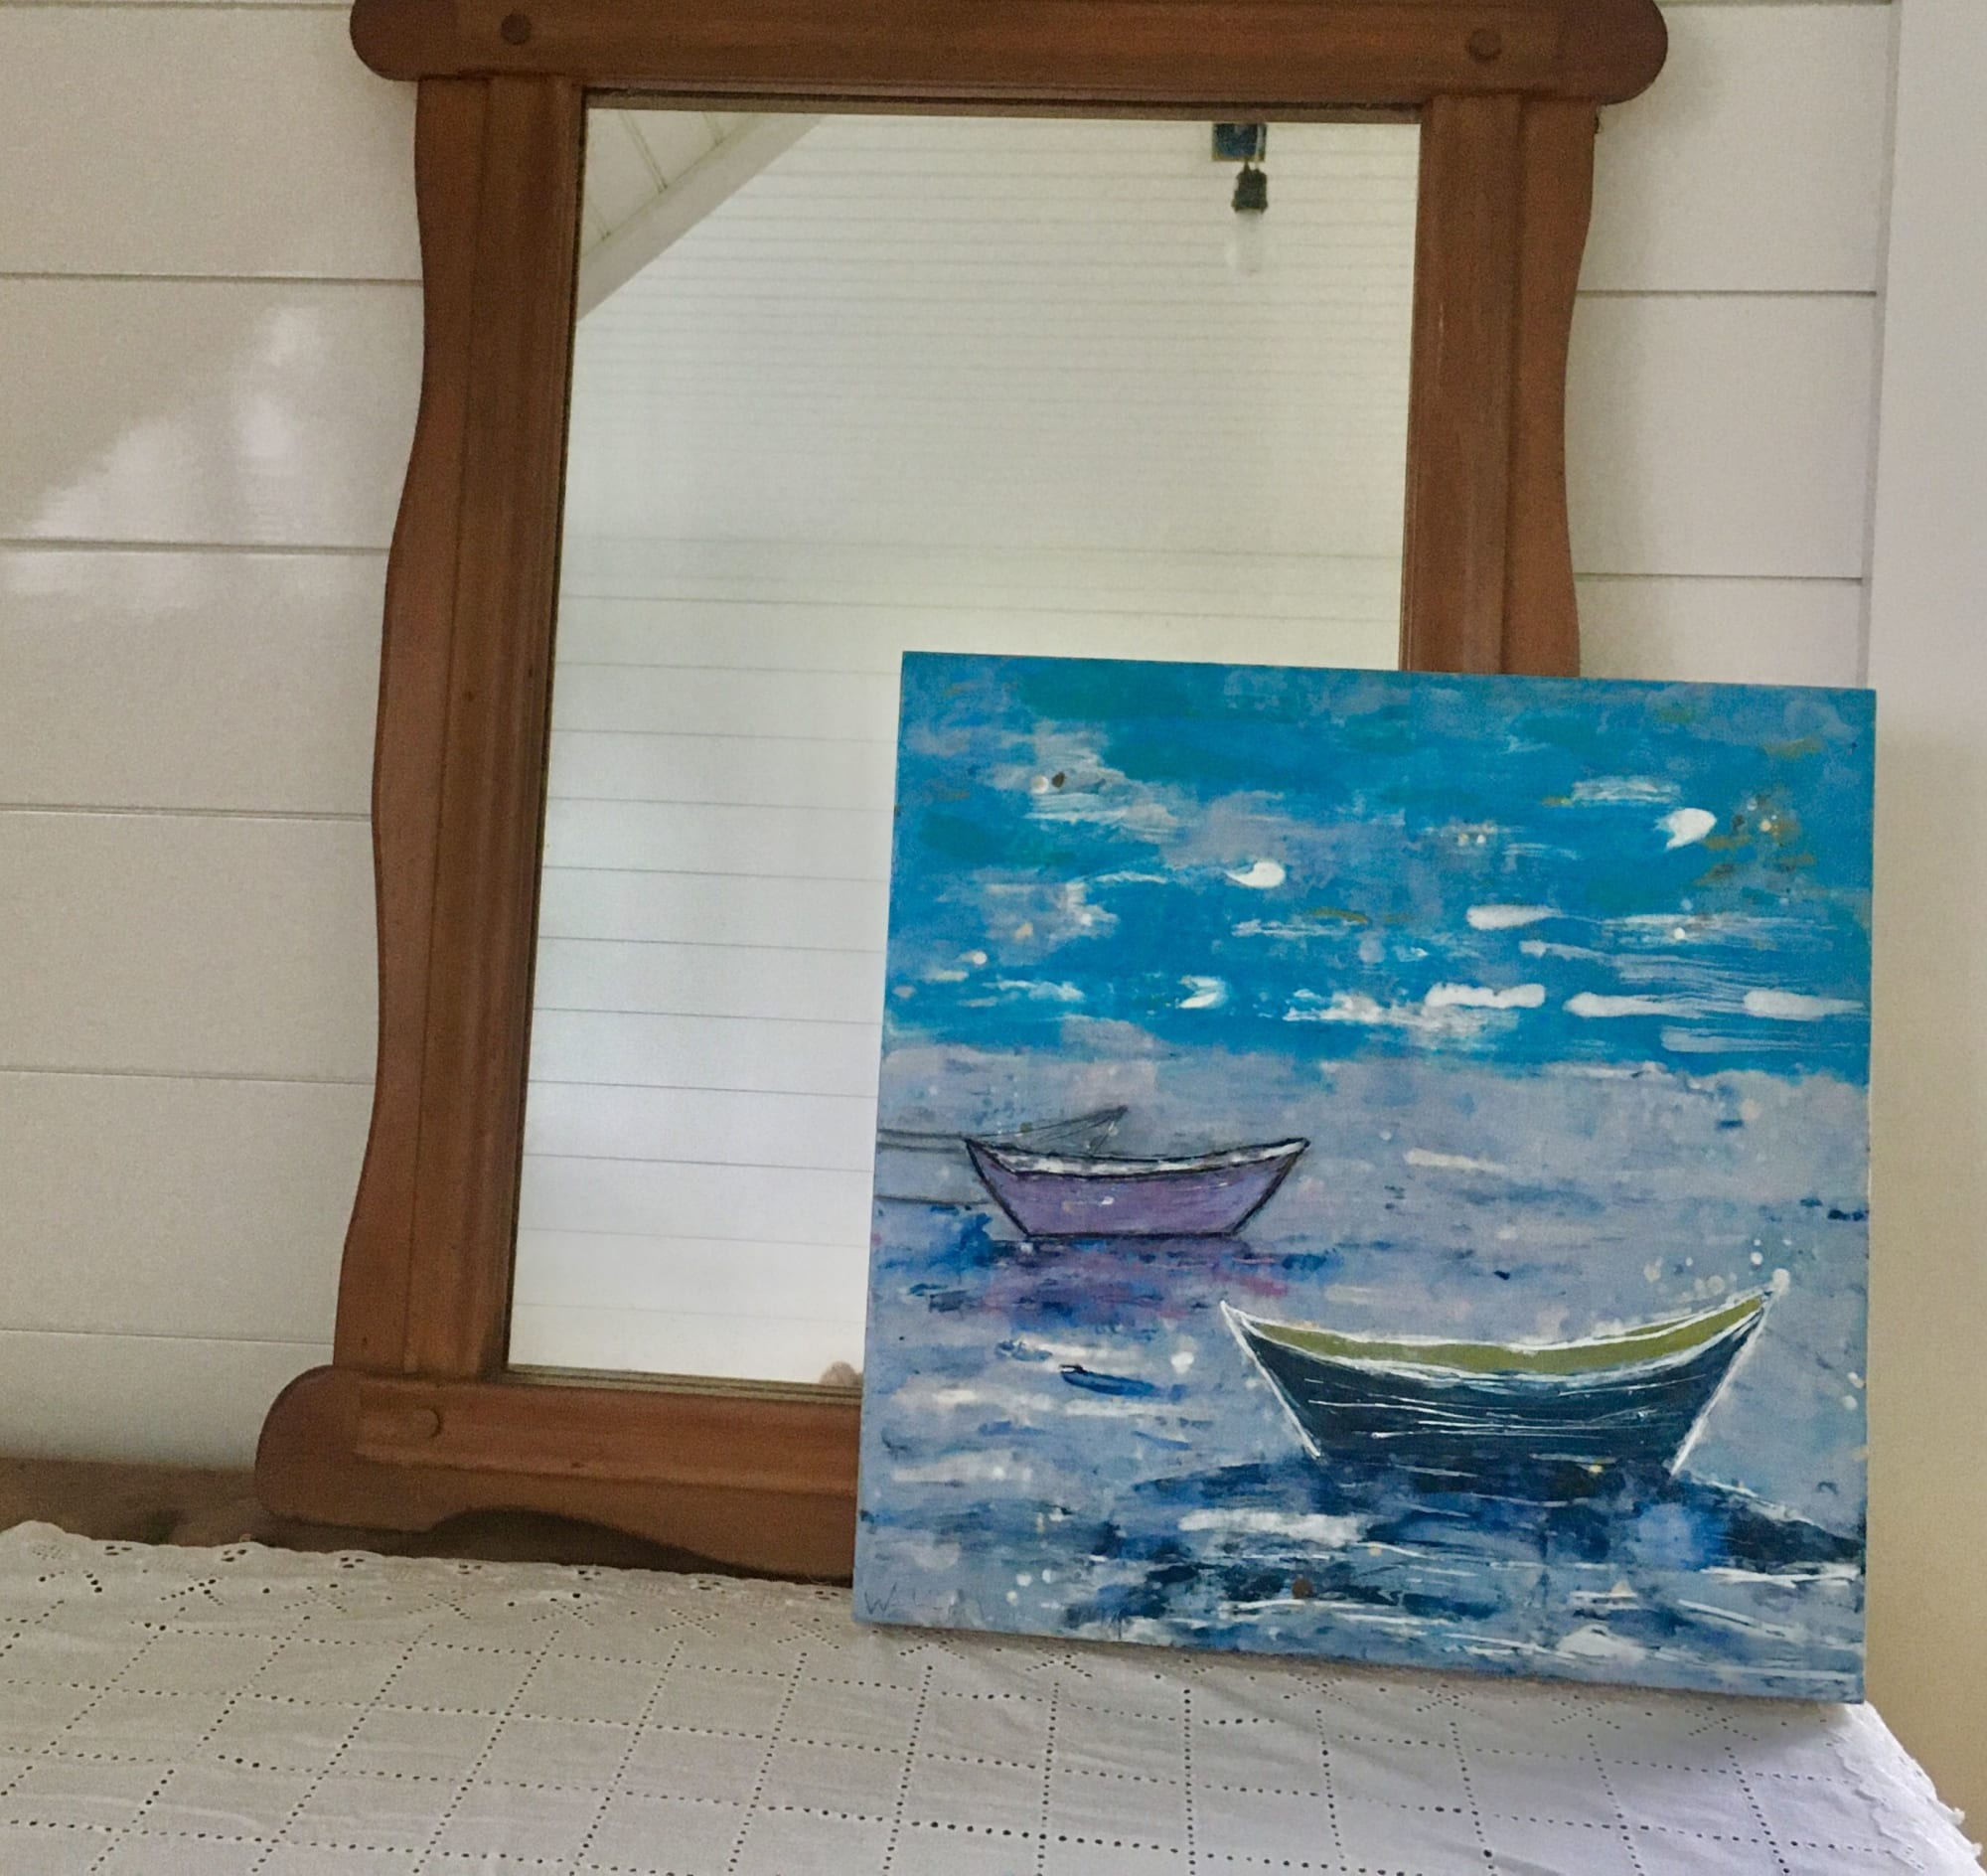 Paintings by willa vennema seen at Private Residence, Swans Island - Boat Series: Three Boats at Rest